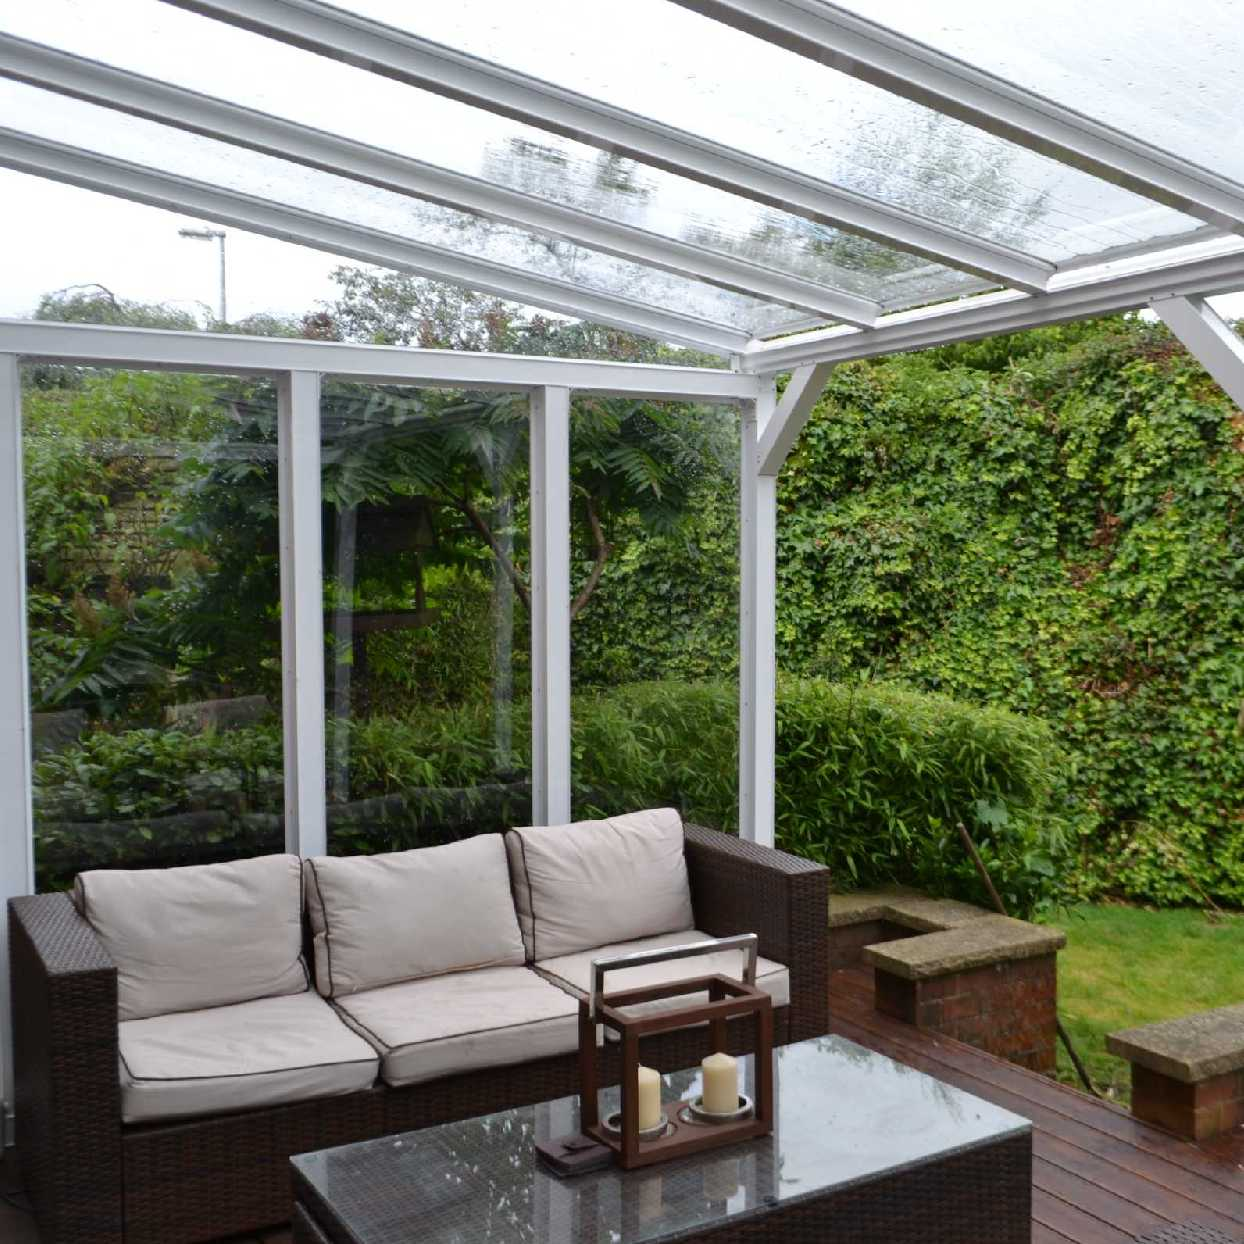 Omega Smart White Lean-To Canopy UNGLAZED for 6mm Glazing - 3.5m (W) x 2.0m (P), (3) Supporting Posts